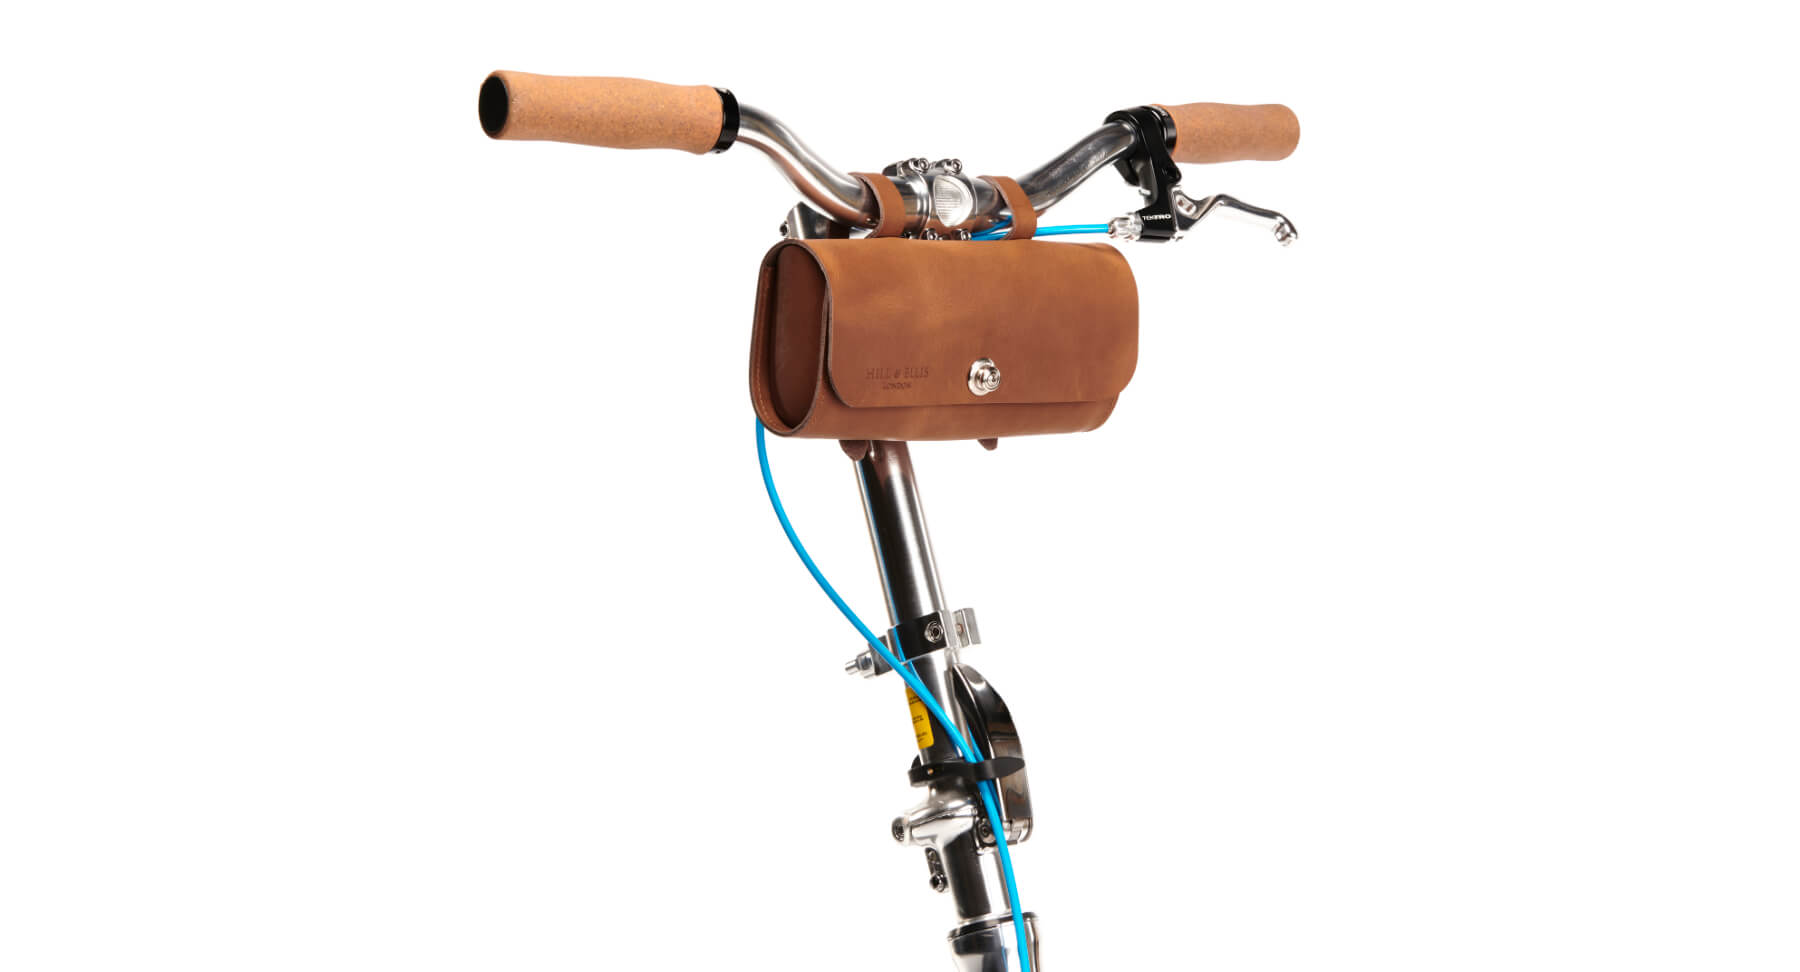 scooter bags, scooter pannier, leather handlebar bag